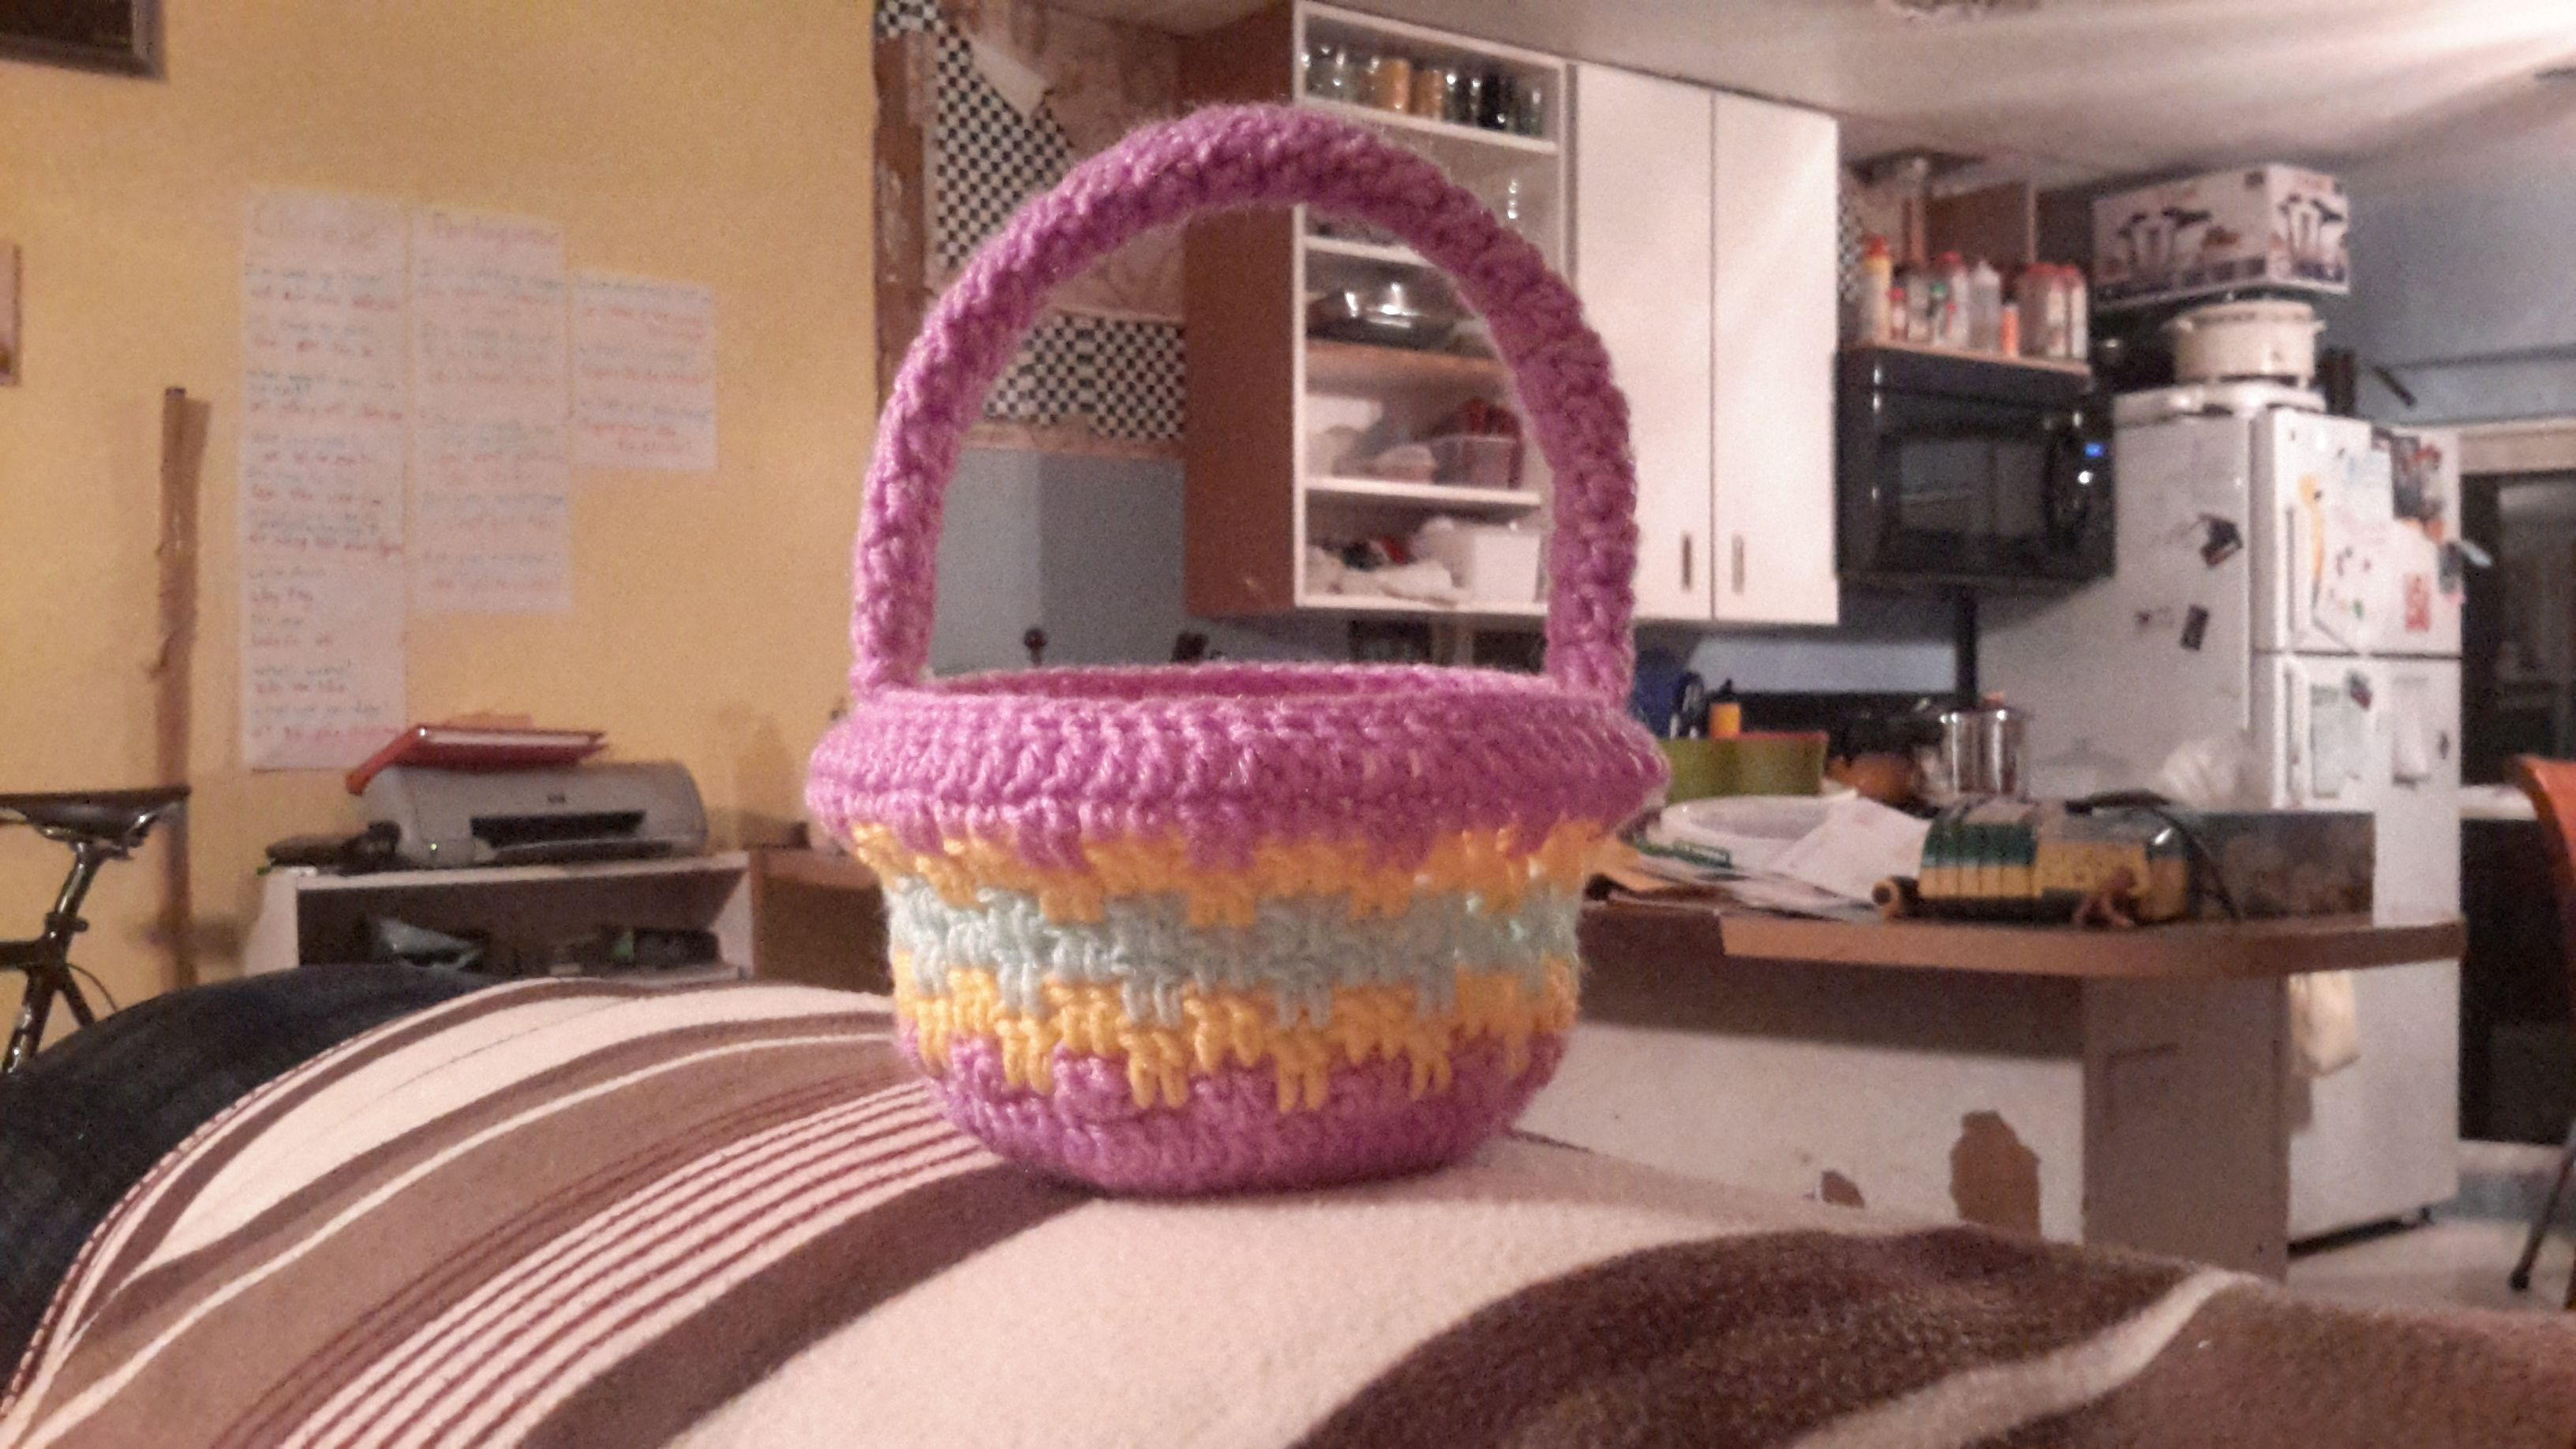 Crocheted striped Easter basket